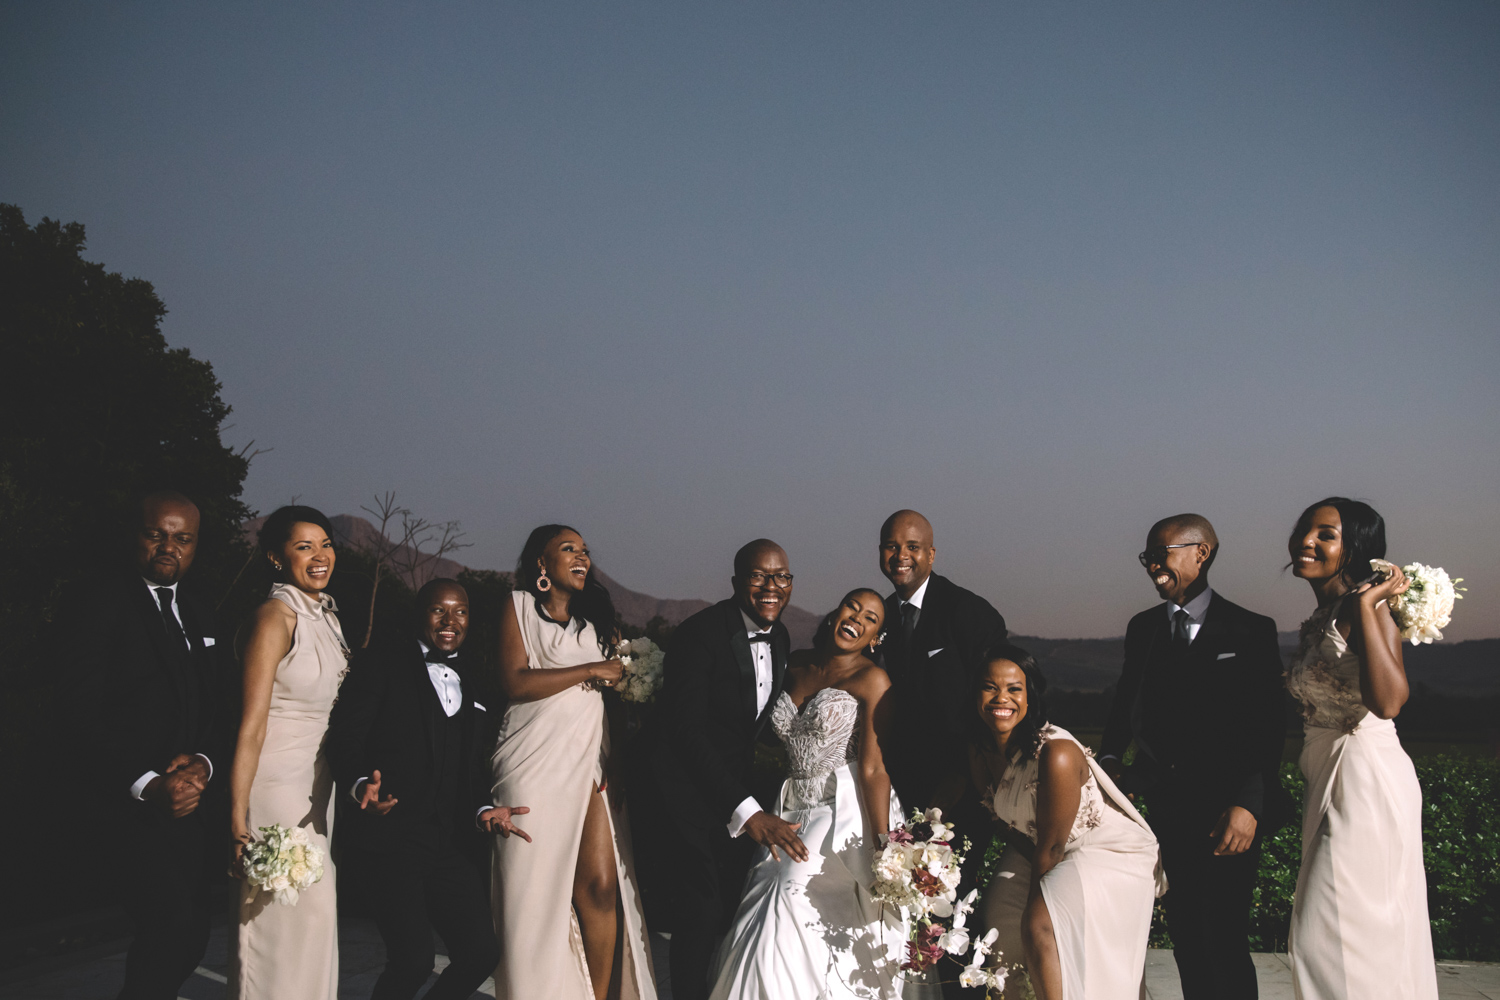 The bridal party smiling and having fun on the Lourensford wine estate